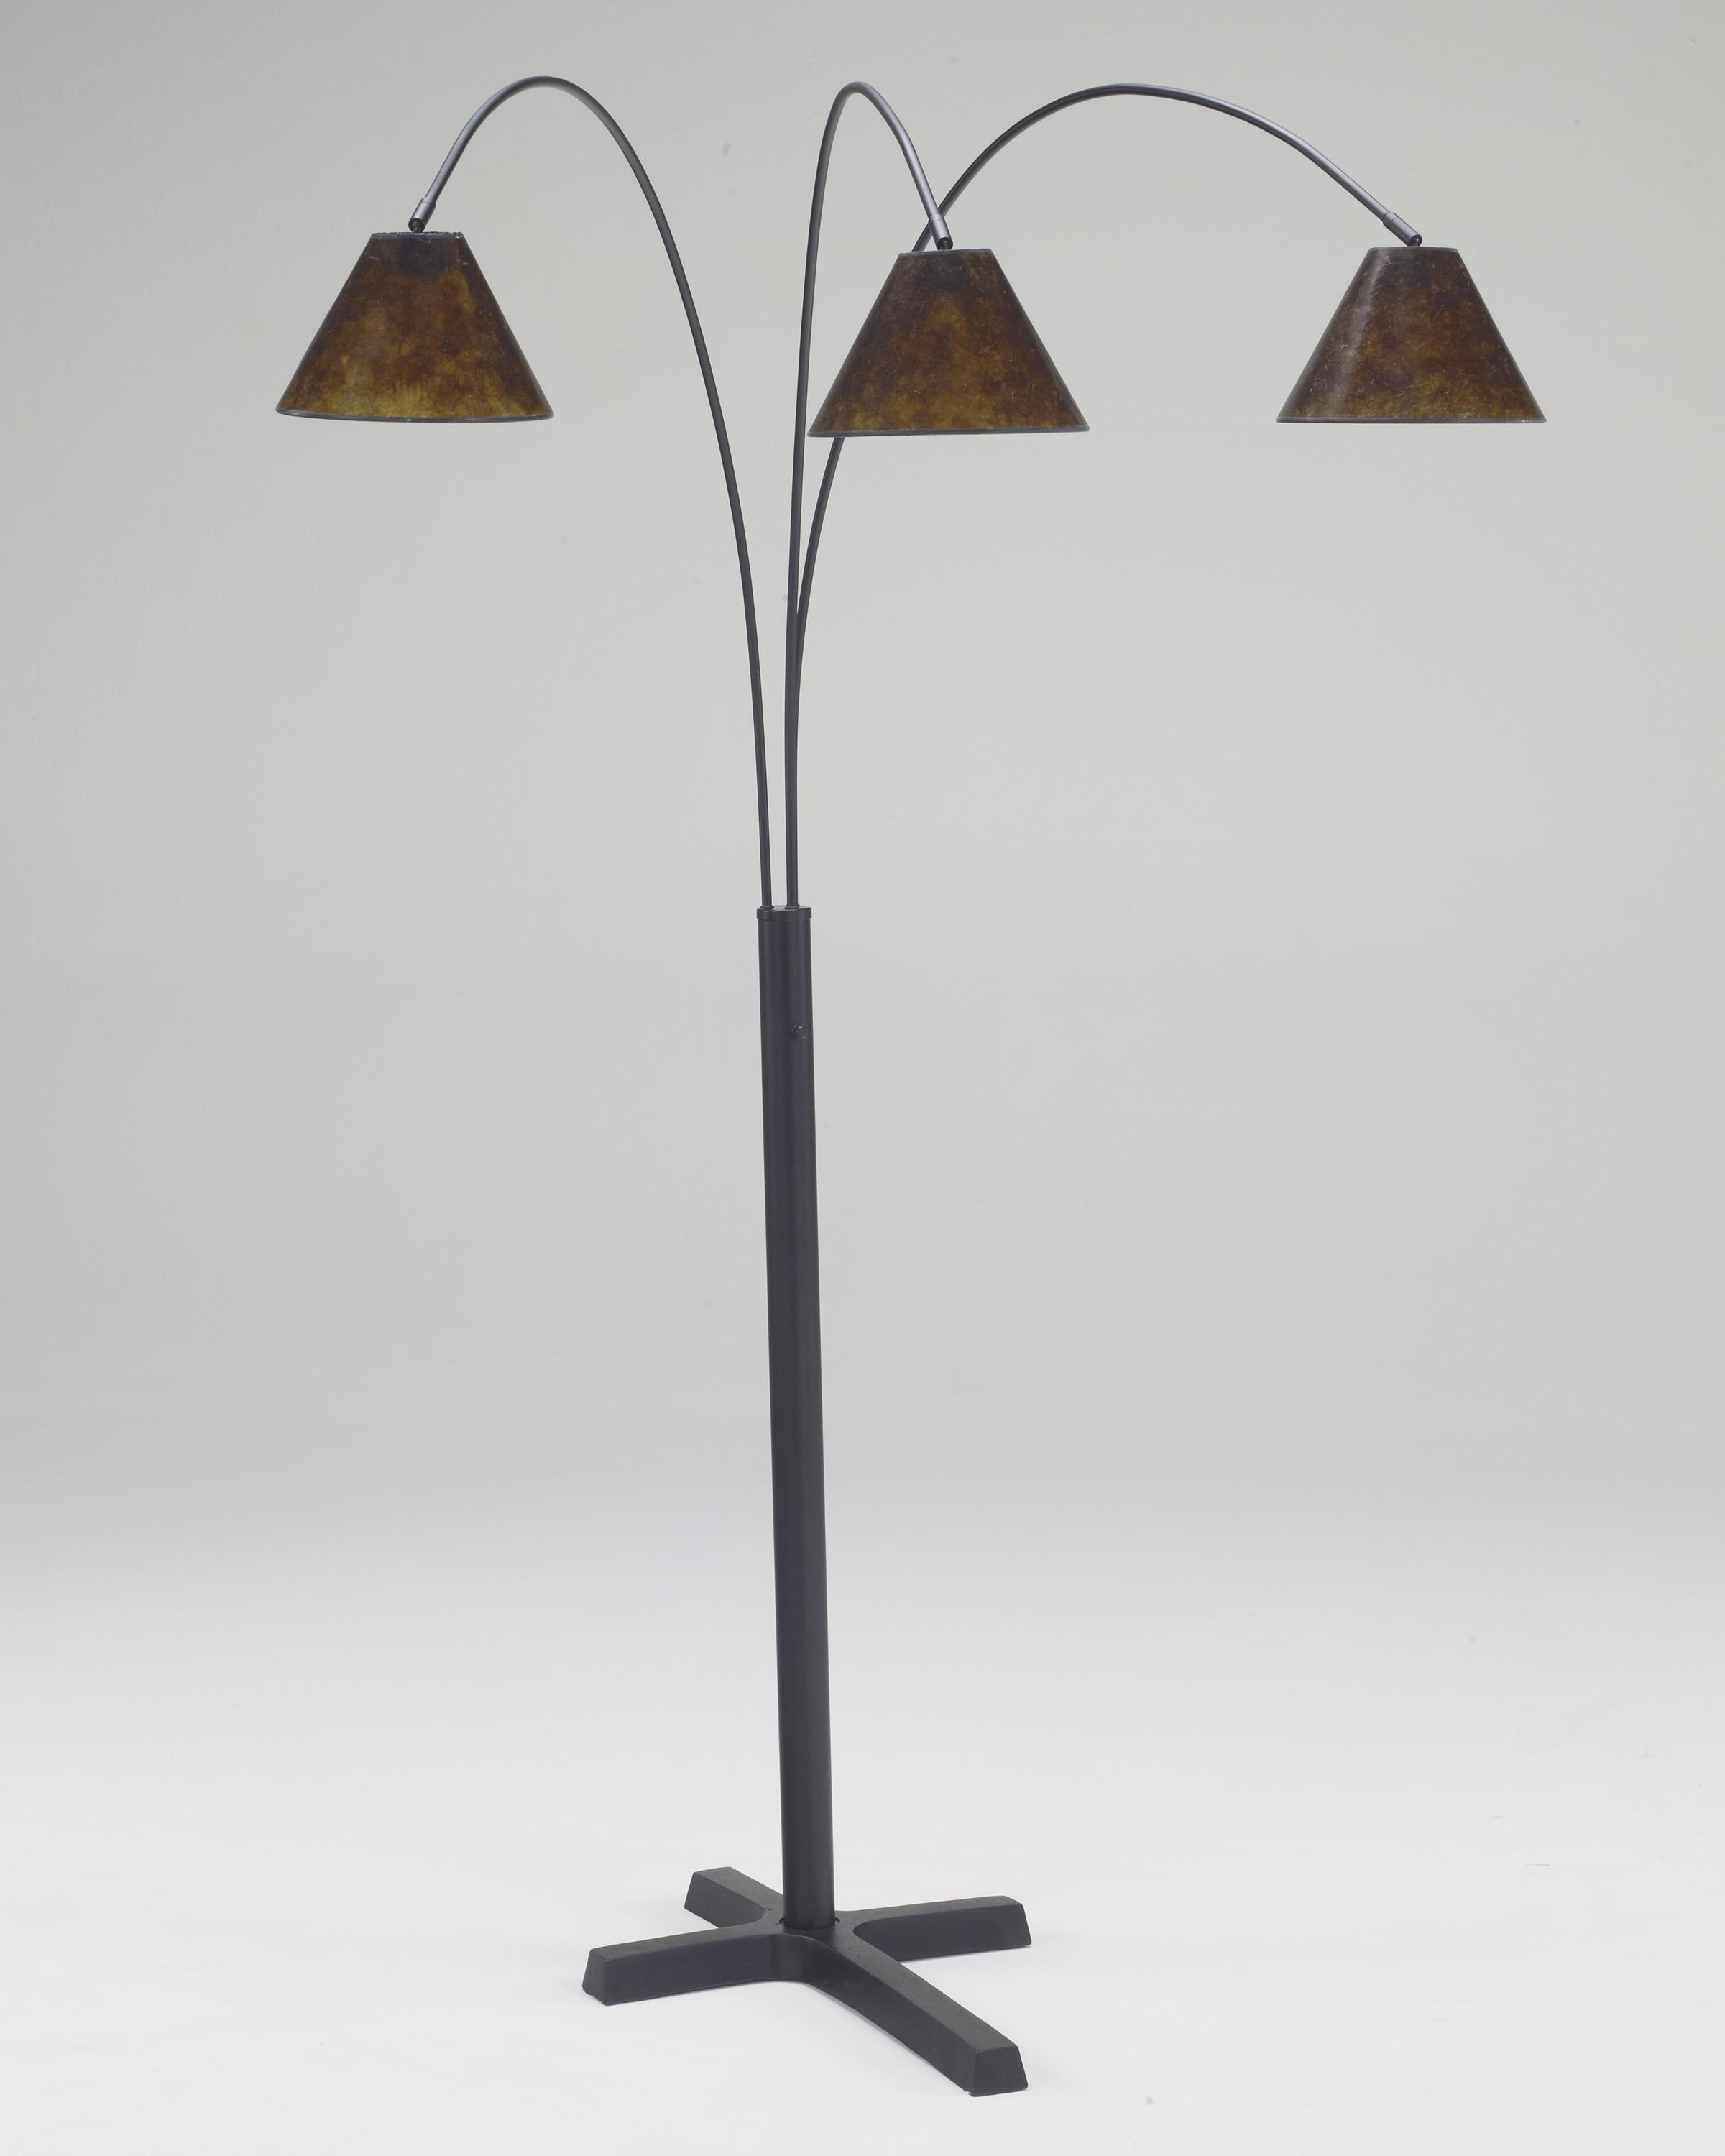 Lamps - Vintage Style Sharde Metal Arc Lamp by Signature Design by Ashley at Northeast Factory Direct